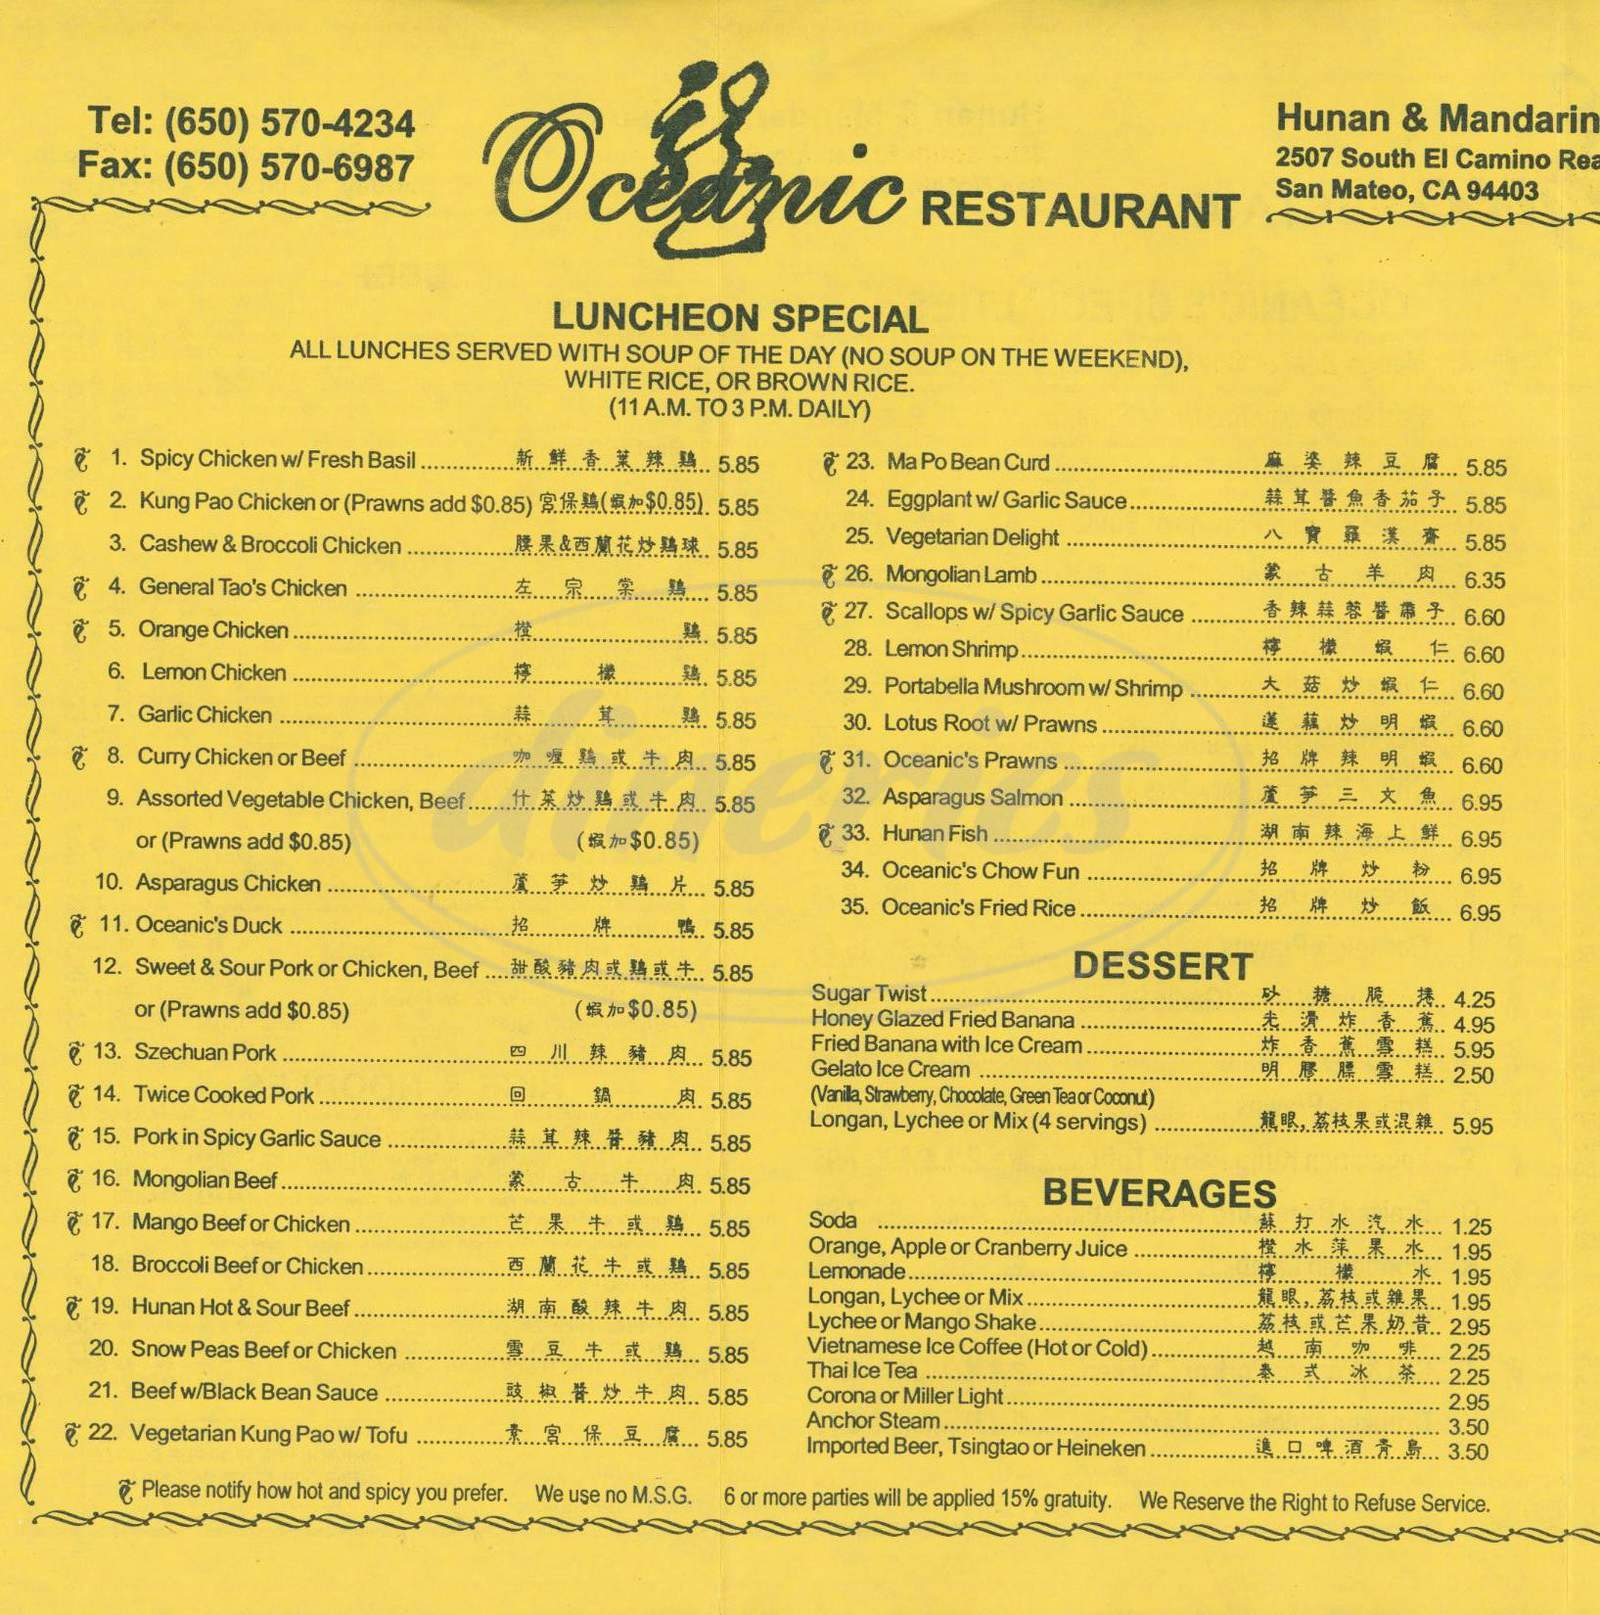 menu for Oceanic Restaurant